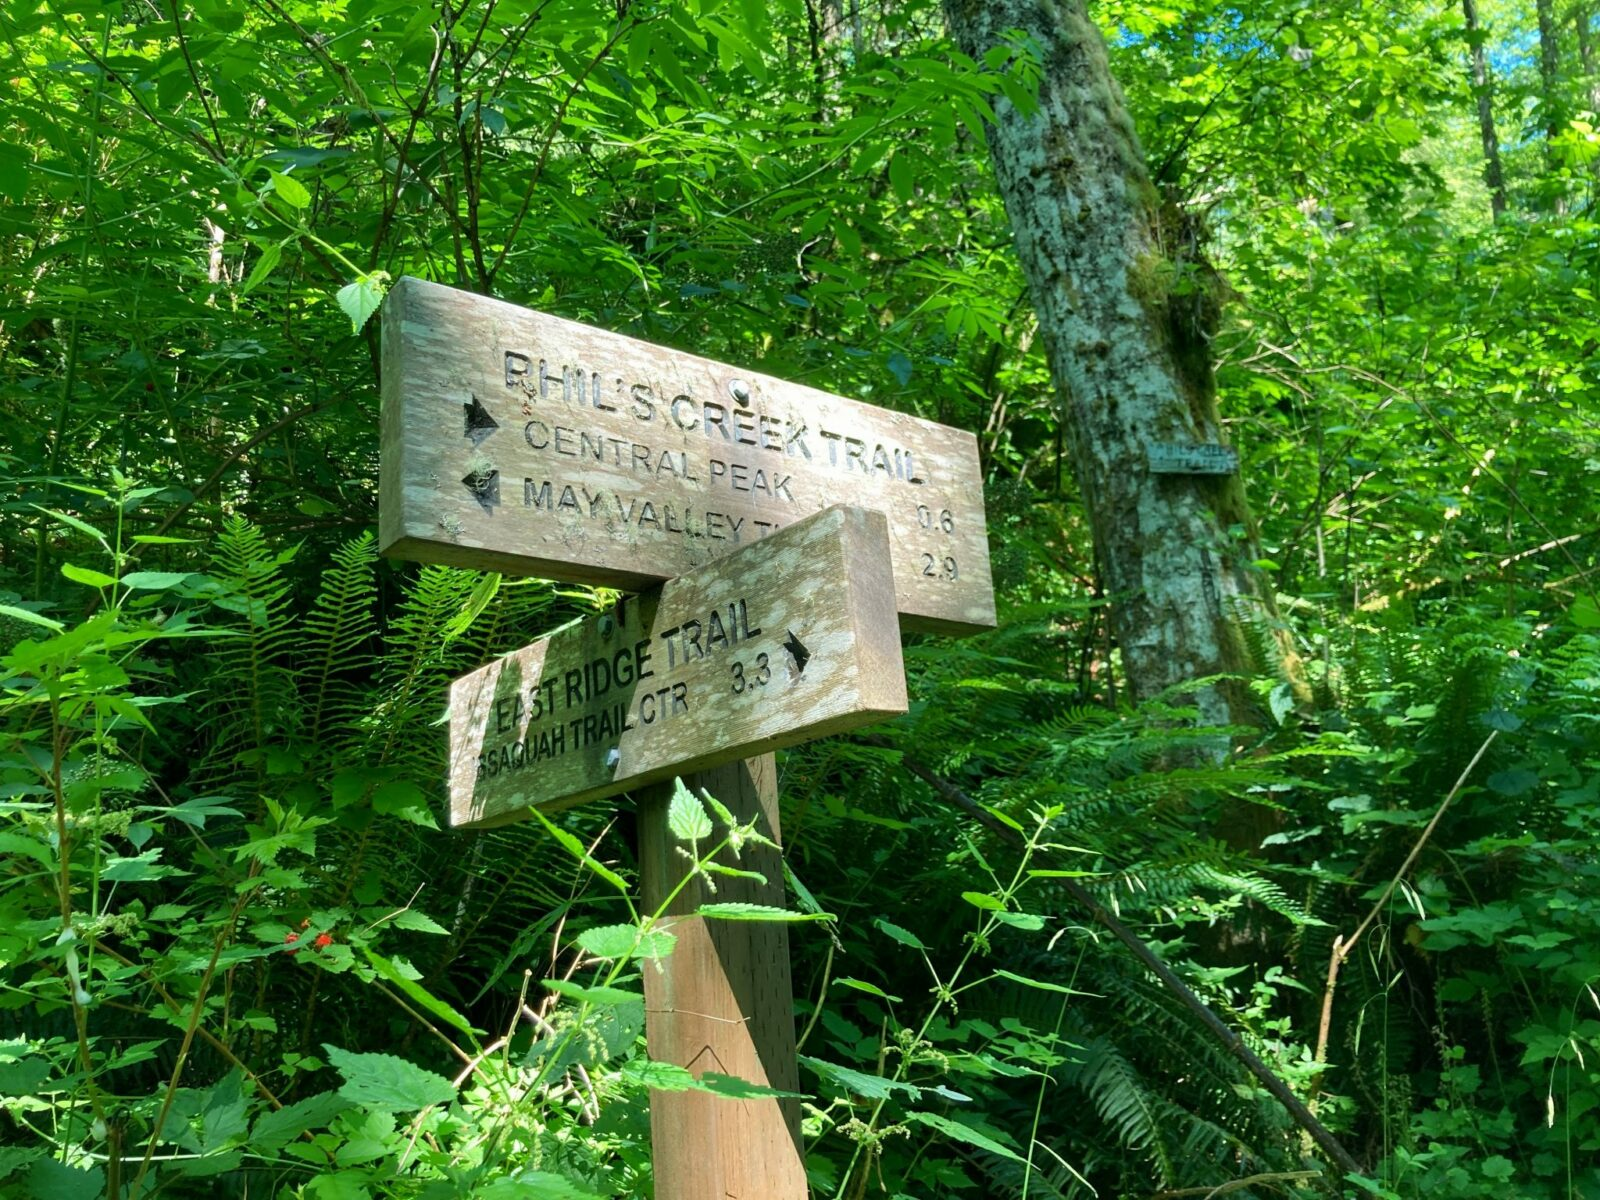 Two wooden direction trail signs on the East Ridge Trail in Squak Mountain State park. One sign points to Central Peak and May Valley Trailhead, the other points to the Issaquah Trail Center